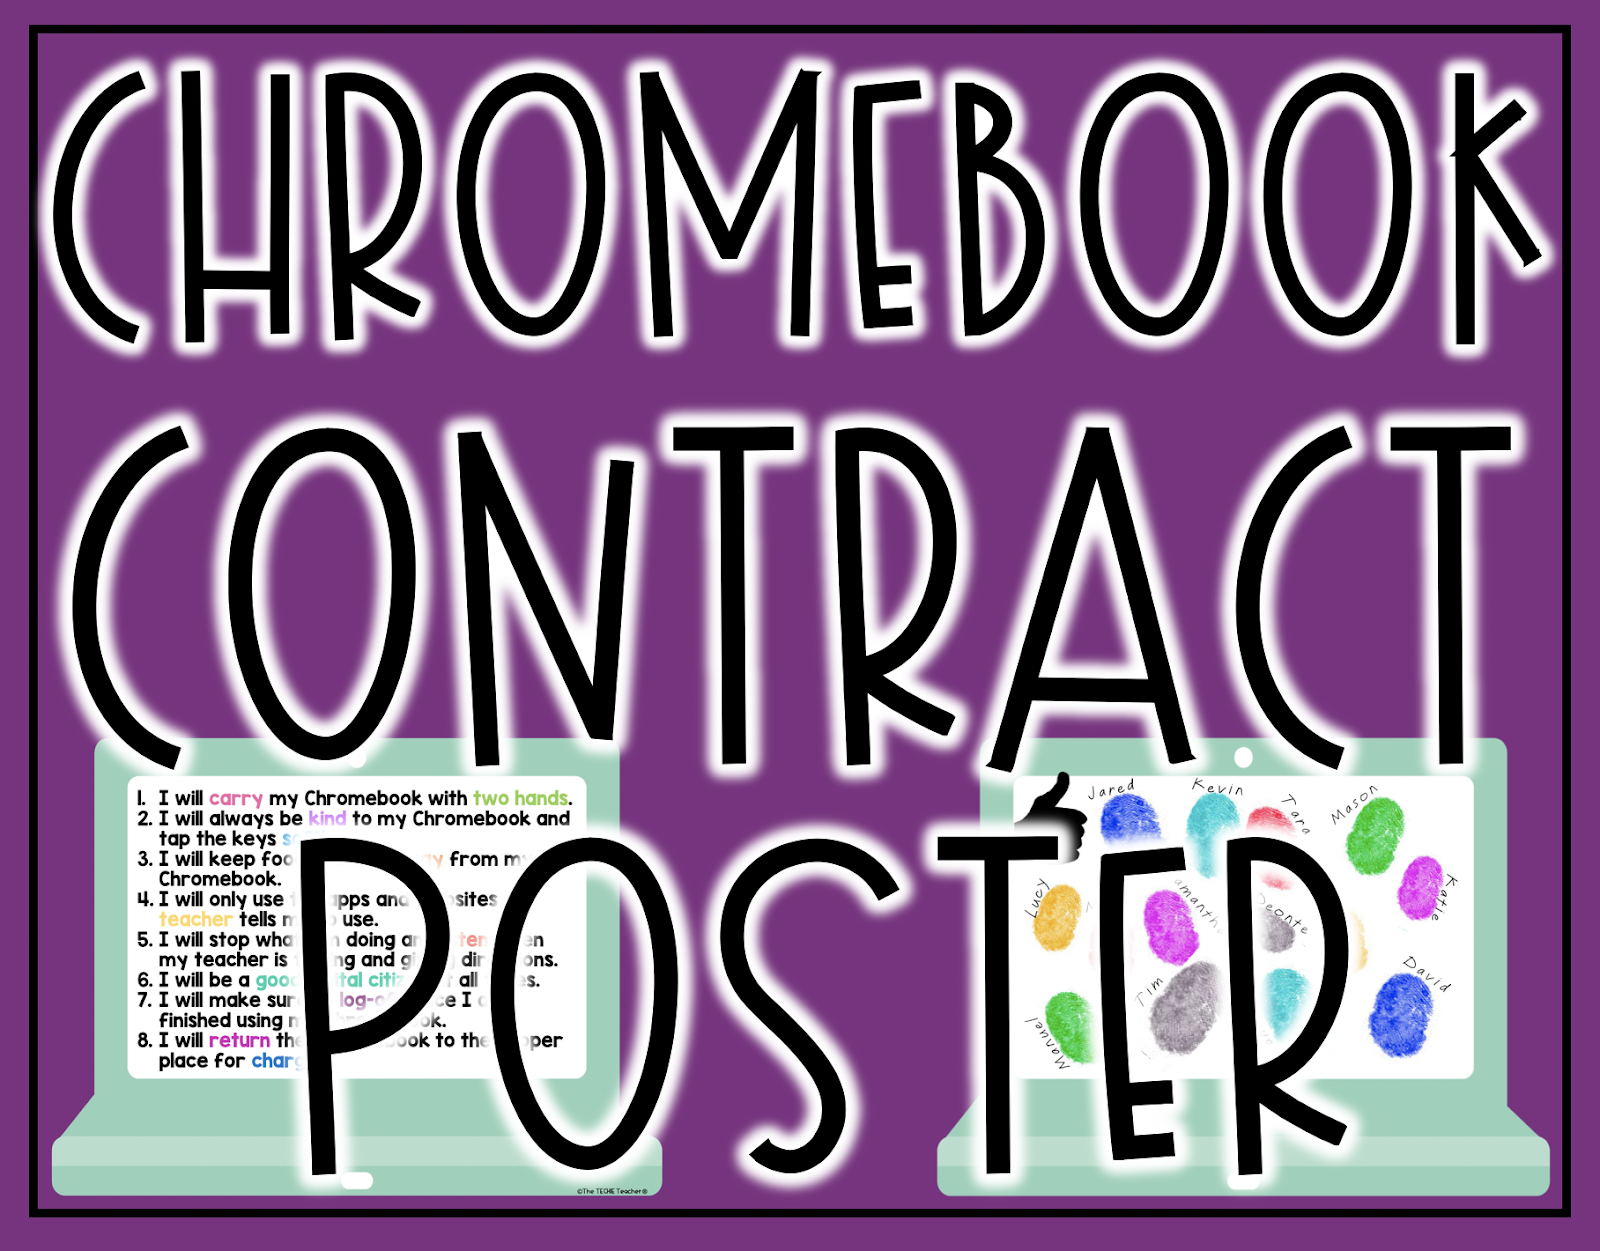 Chromebook Rules Poster to establish classroom expectations when it comes to using technology. Options for a Chromebook Contract, Chromebook Covenant and Chromebook Commitment are all included!